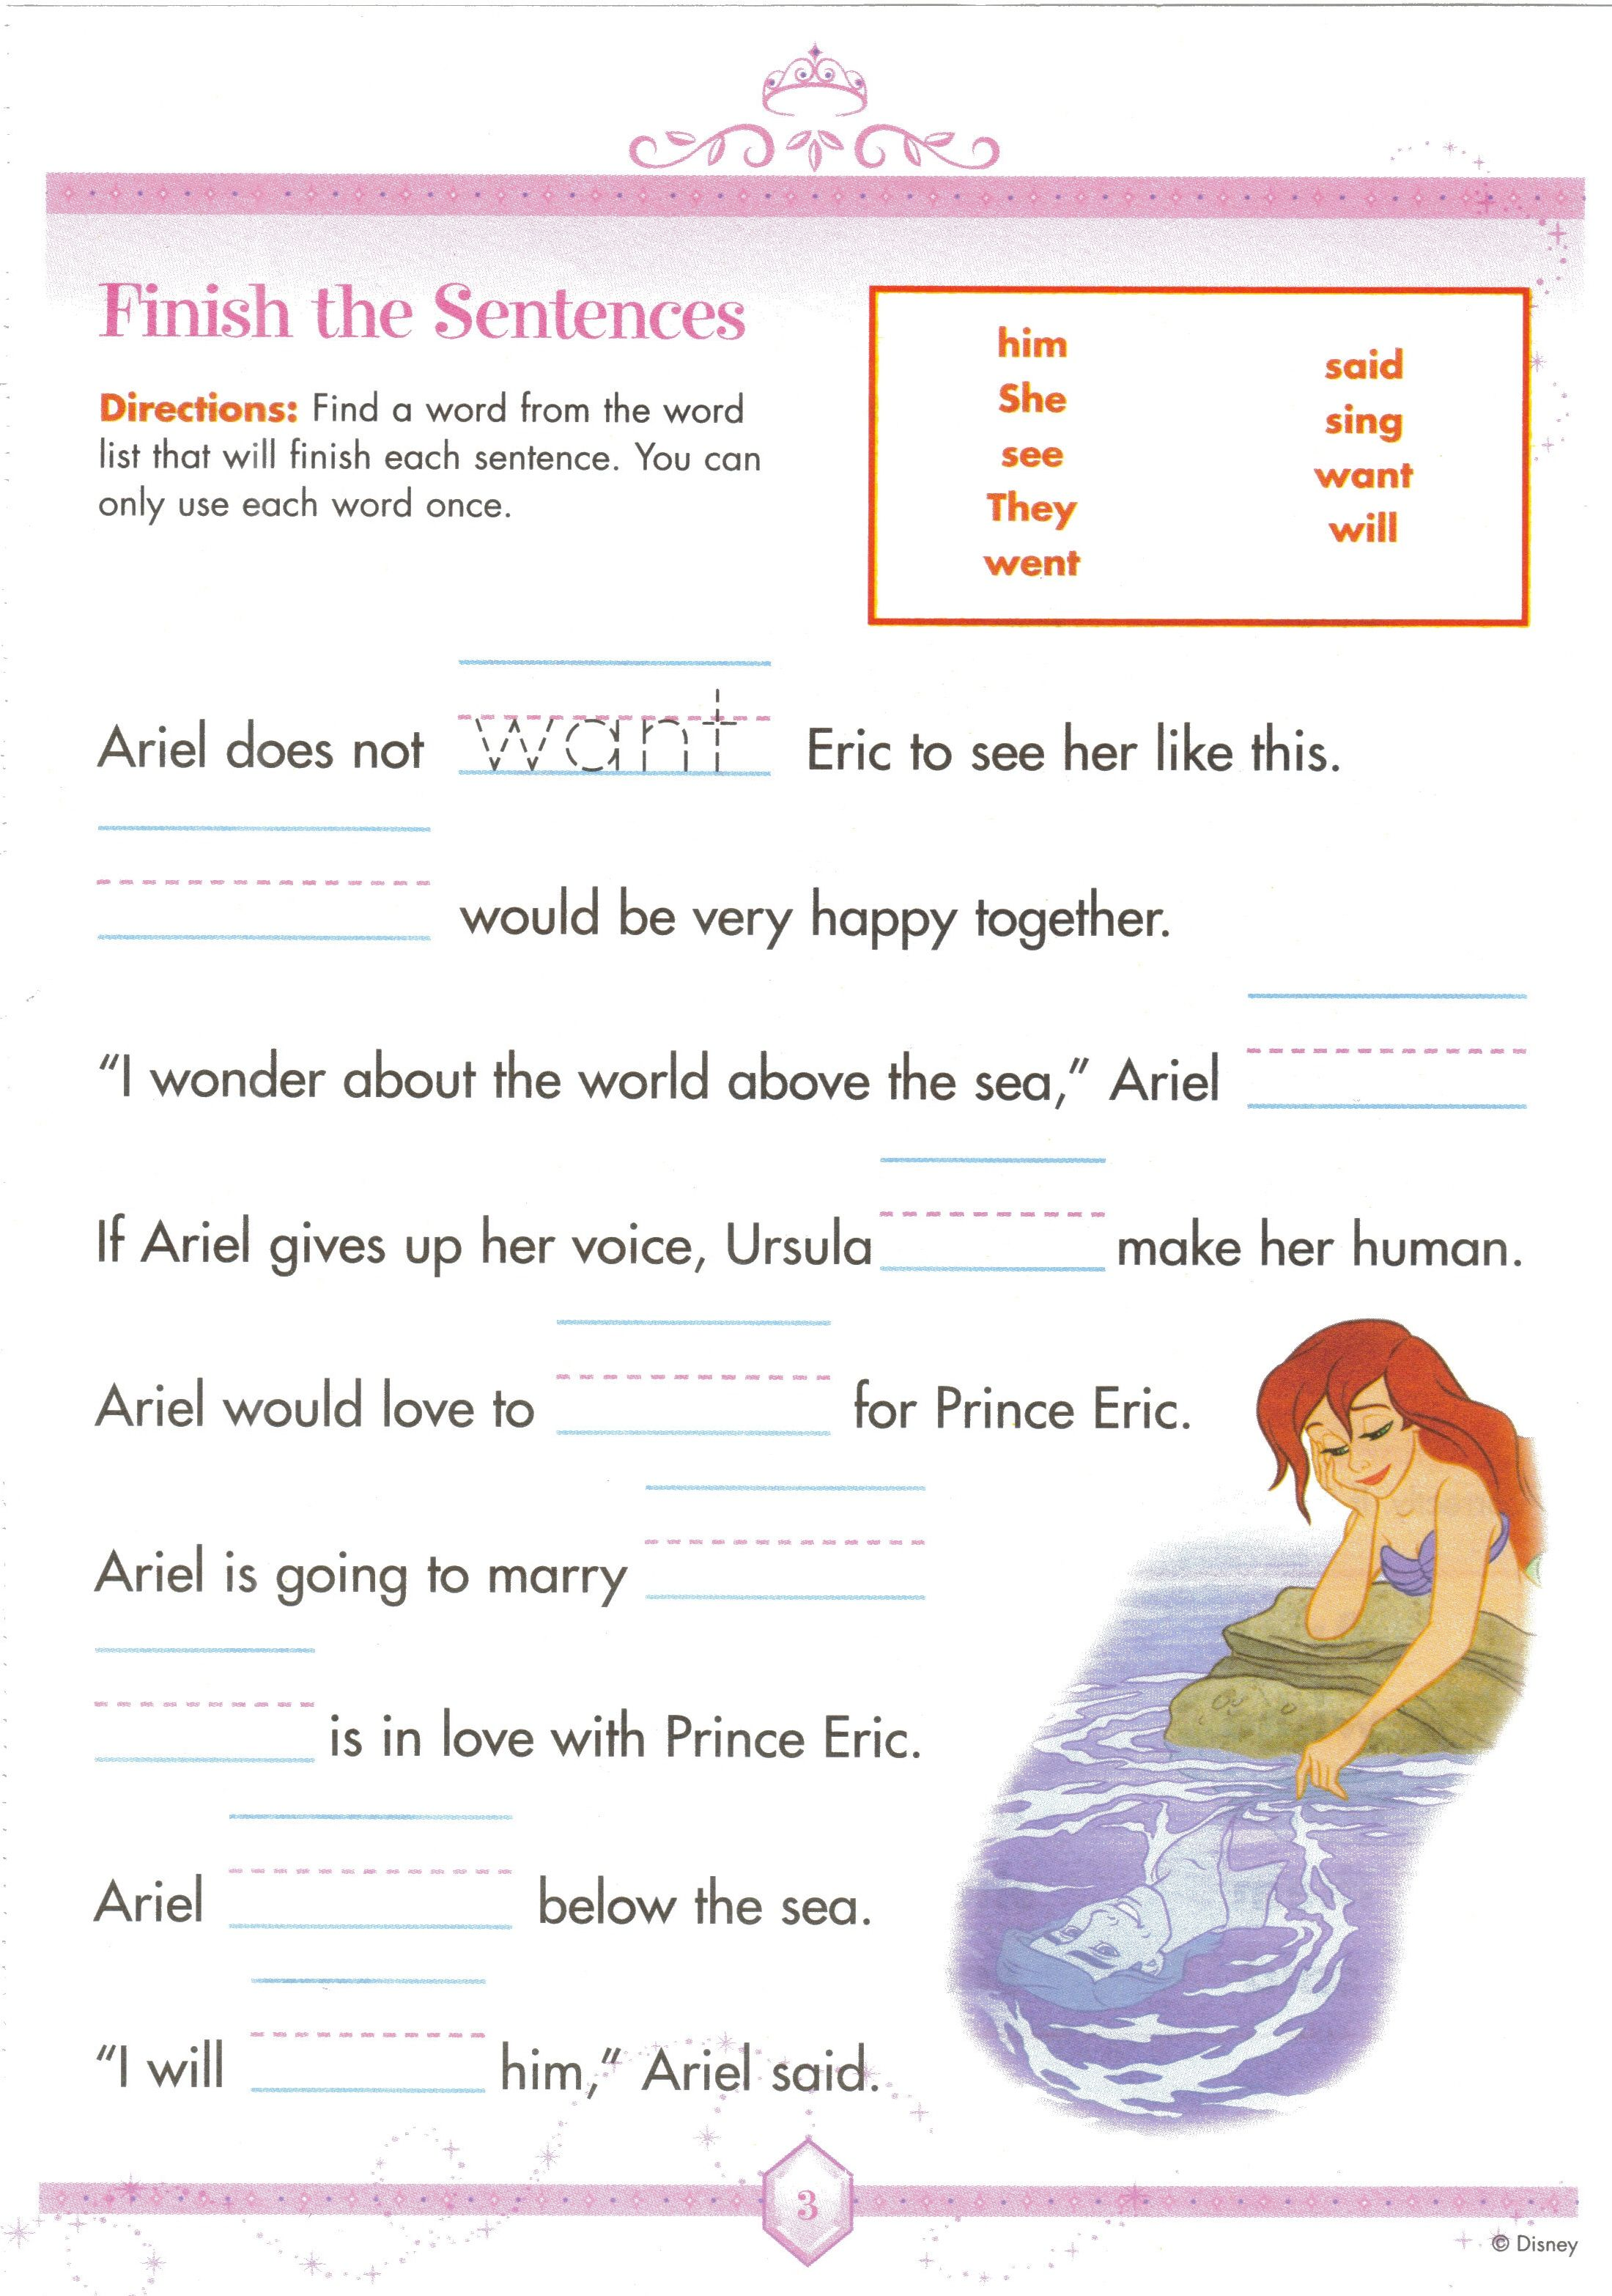 Proatmealus  Pleasant  Images About Worksheets On Pinterest  Fun Facts For Kids  With Handsome  Images About Worksheets On Pinterest  Fun Facts For Kids Earth Day Worksheets And Jungles With Delectable Map Of The Bahamas Worksheet Also Irregular Possessive Nouns Worksheet In Addition Free Math Worksheets Addition And Subtraction And English Grammar Worksheets For Class  As Well As Phonic Words Worksheets Additionally Worksheet On Direct And Indirect Speech From Pinterestcom With Proatmealus  Handsome  Images About Worksheets On Pinterest  Fun Facts For Kids  With Delectable  Images About Worksheets On Pinterest  Fun Facts For Kids Earth Day Worksheets And Jungles And Pleasant Map Of The Bahamas Worksheet Also Irregular Possessive Nouns Worksheet In Addition Free Math Worksheets Addition And Subtraction From Pinterestcom